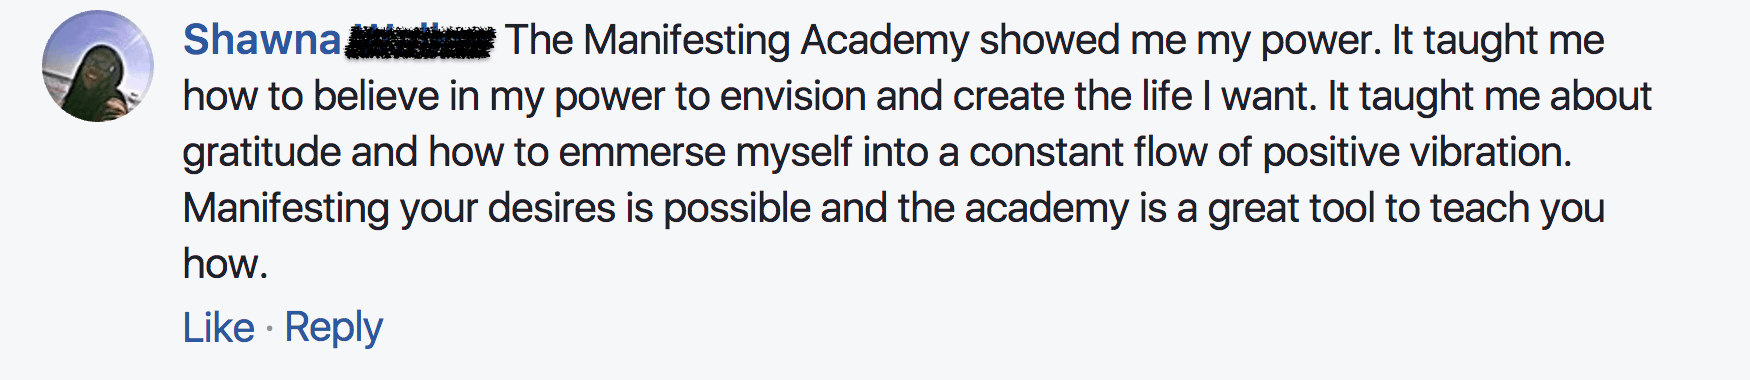 The Manifesting Academy